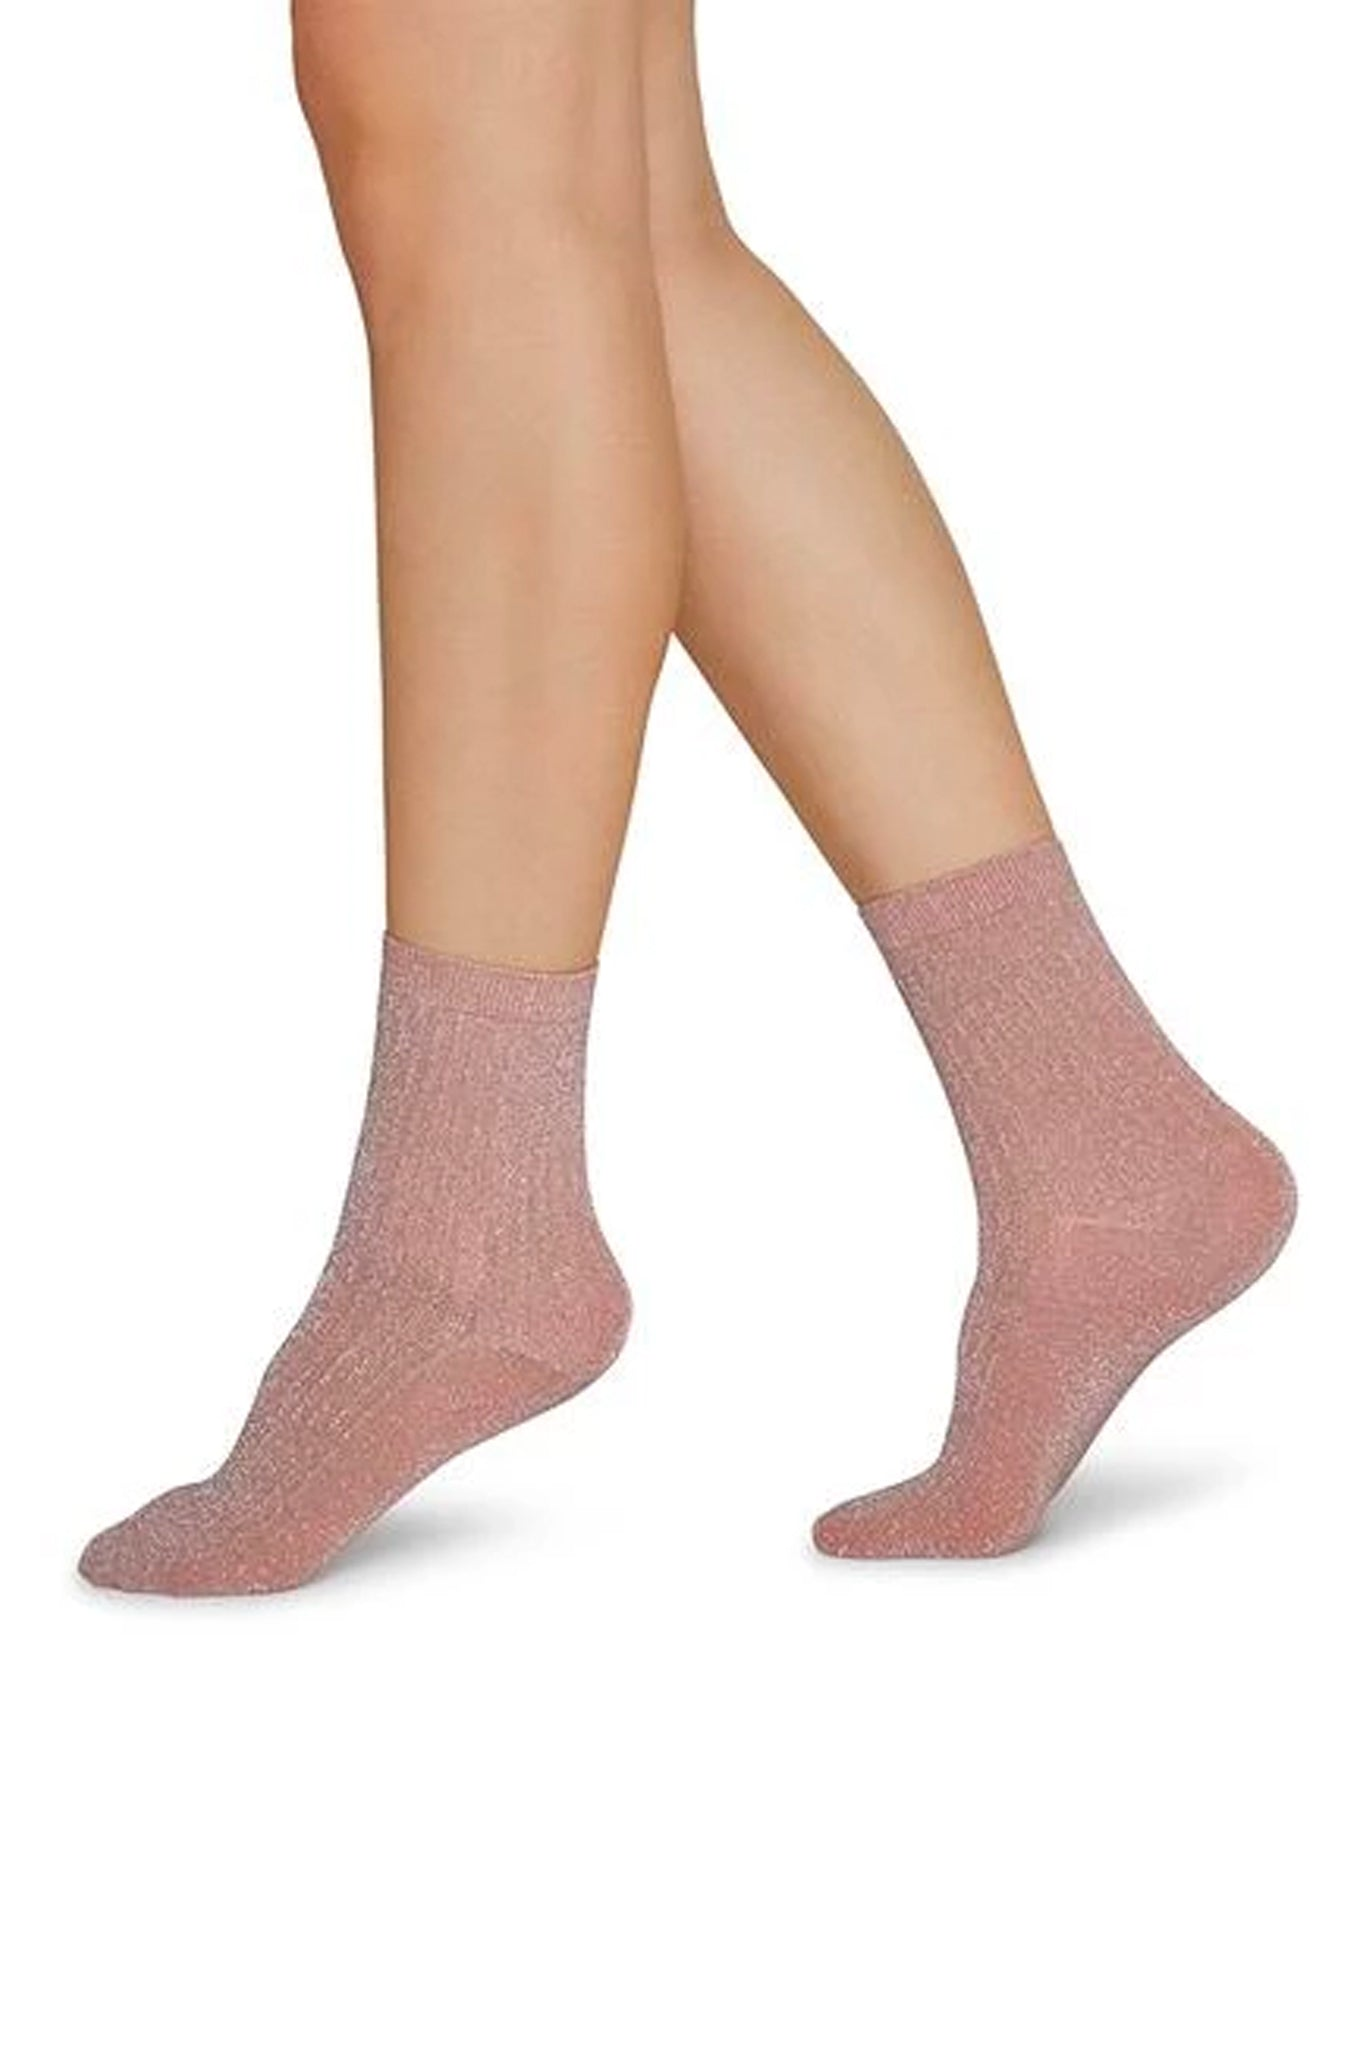 Swedish Stockings Stella Shimmery Socks